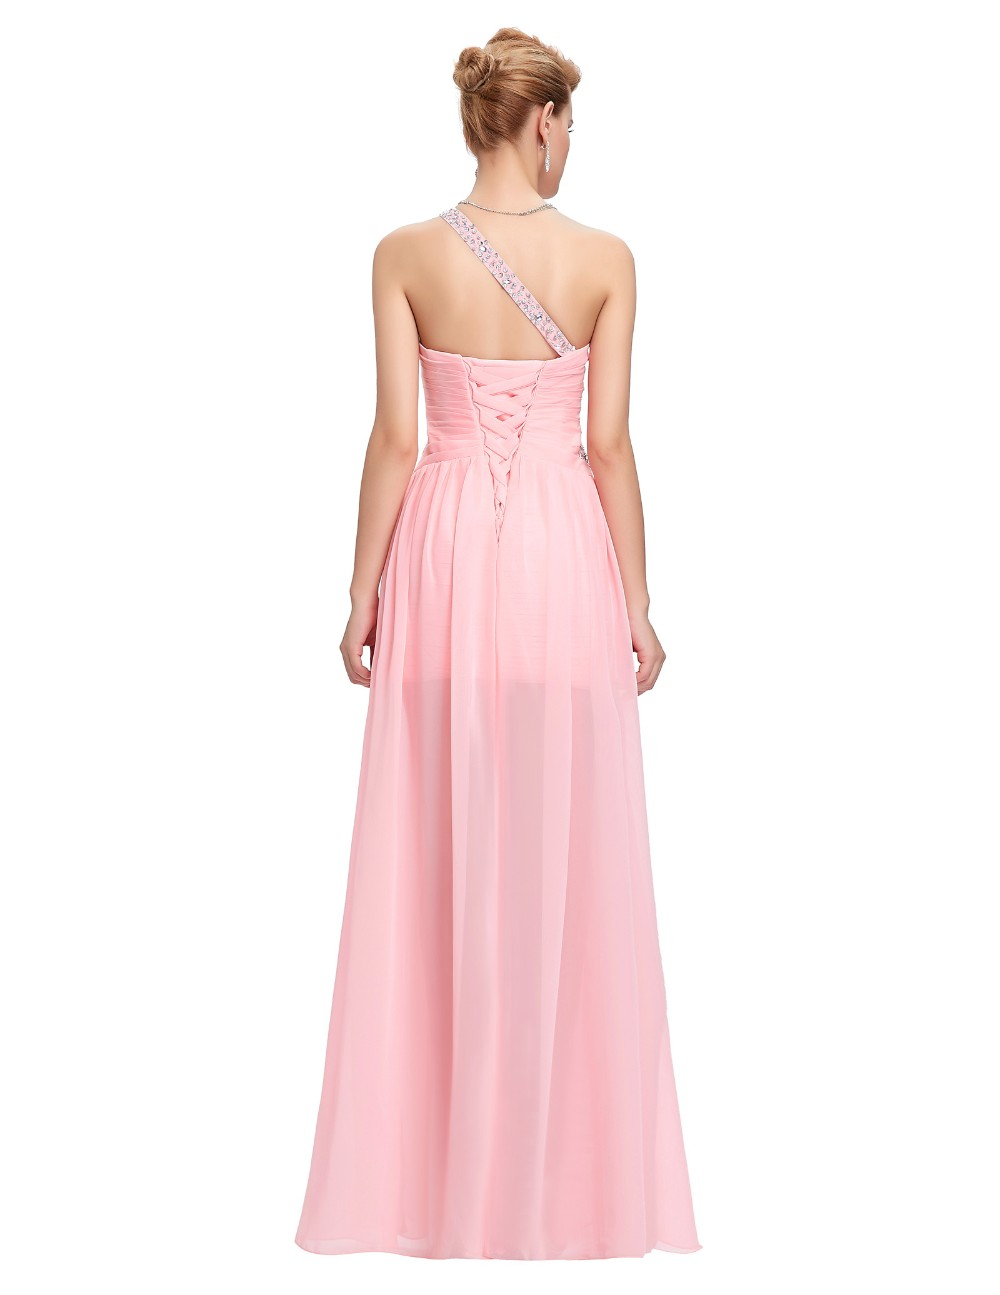 Light Pink Bridesmaid Dresses Grace Karin Beaded Chiffon One Shoulder Formal Gowns Short Front Long Back Wedding Party Dresses 12